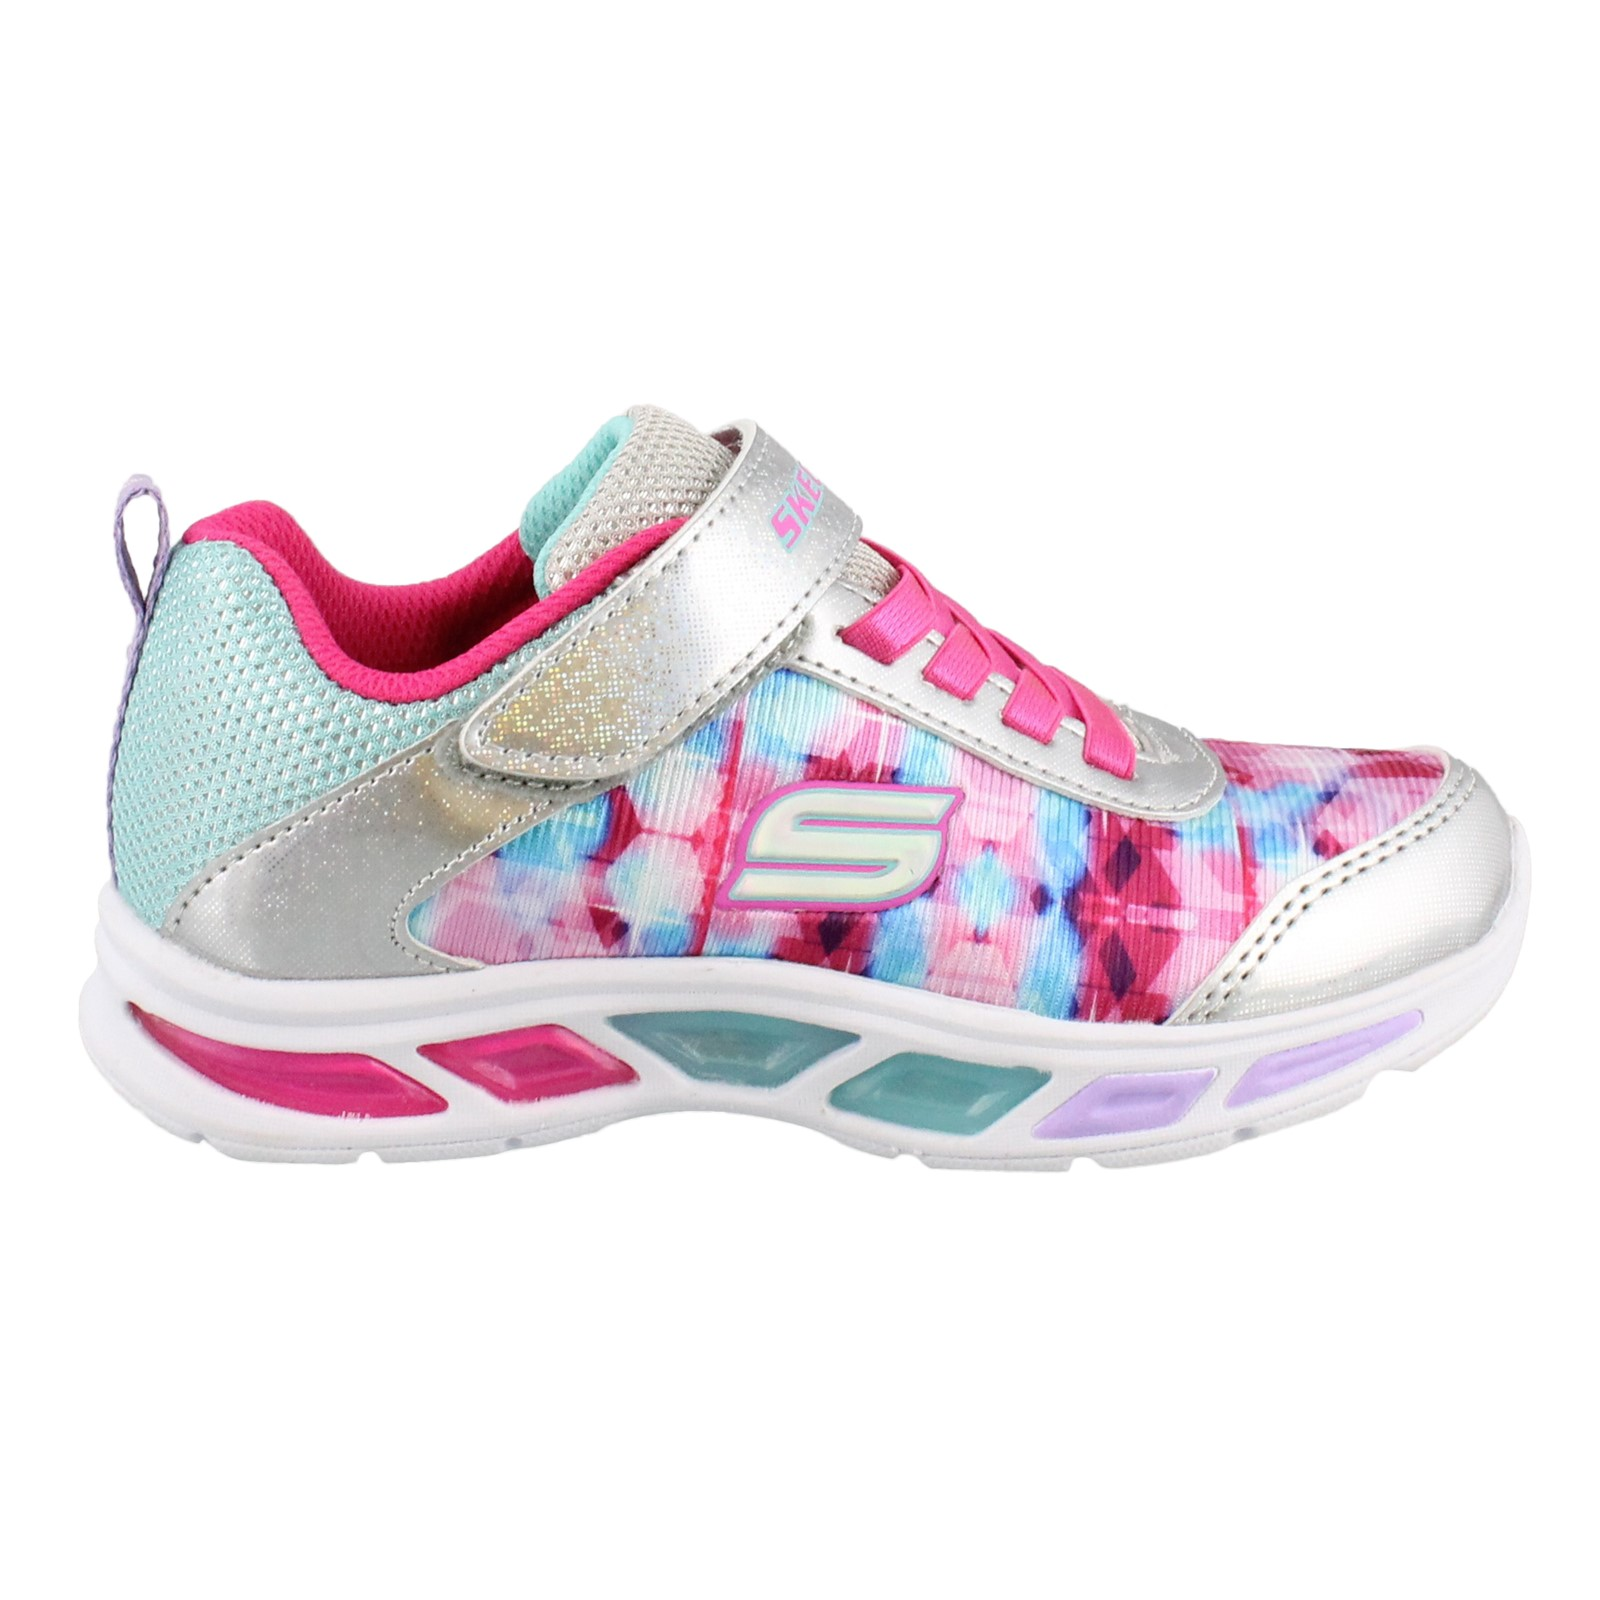 ca0bf5cdbdd7 Home  Girl s Skechers